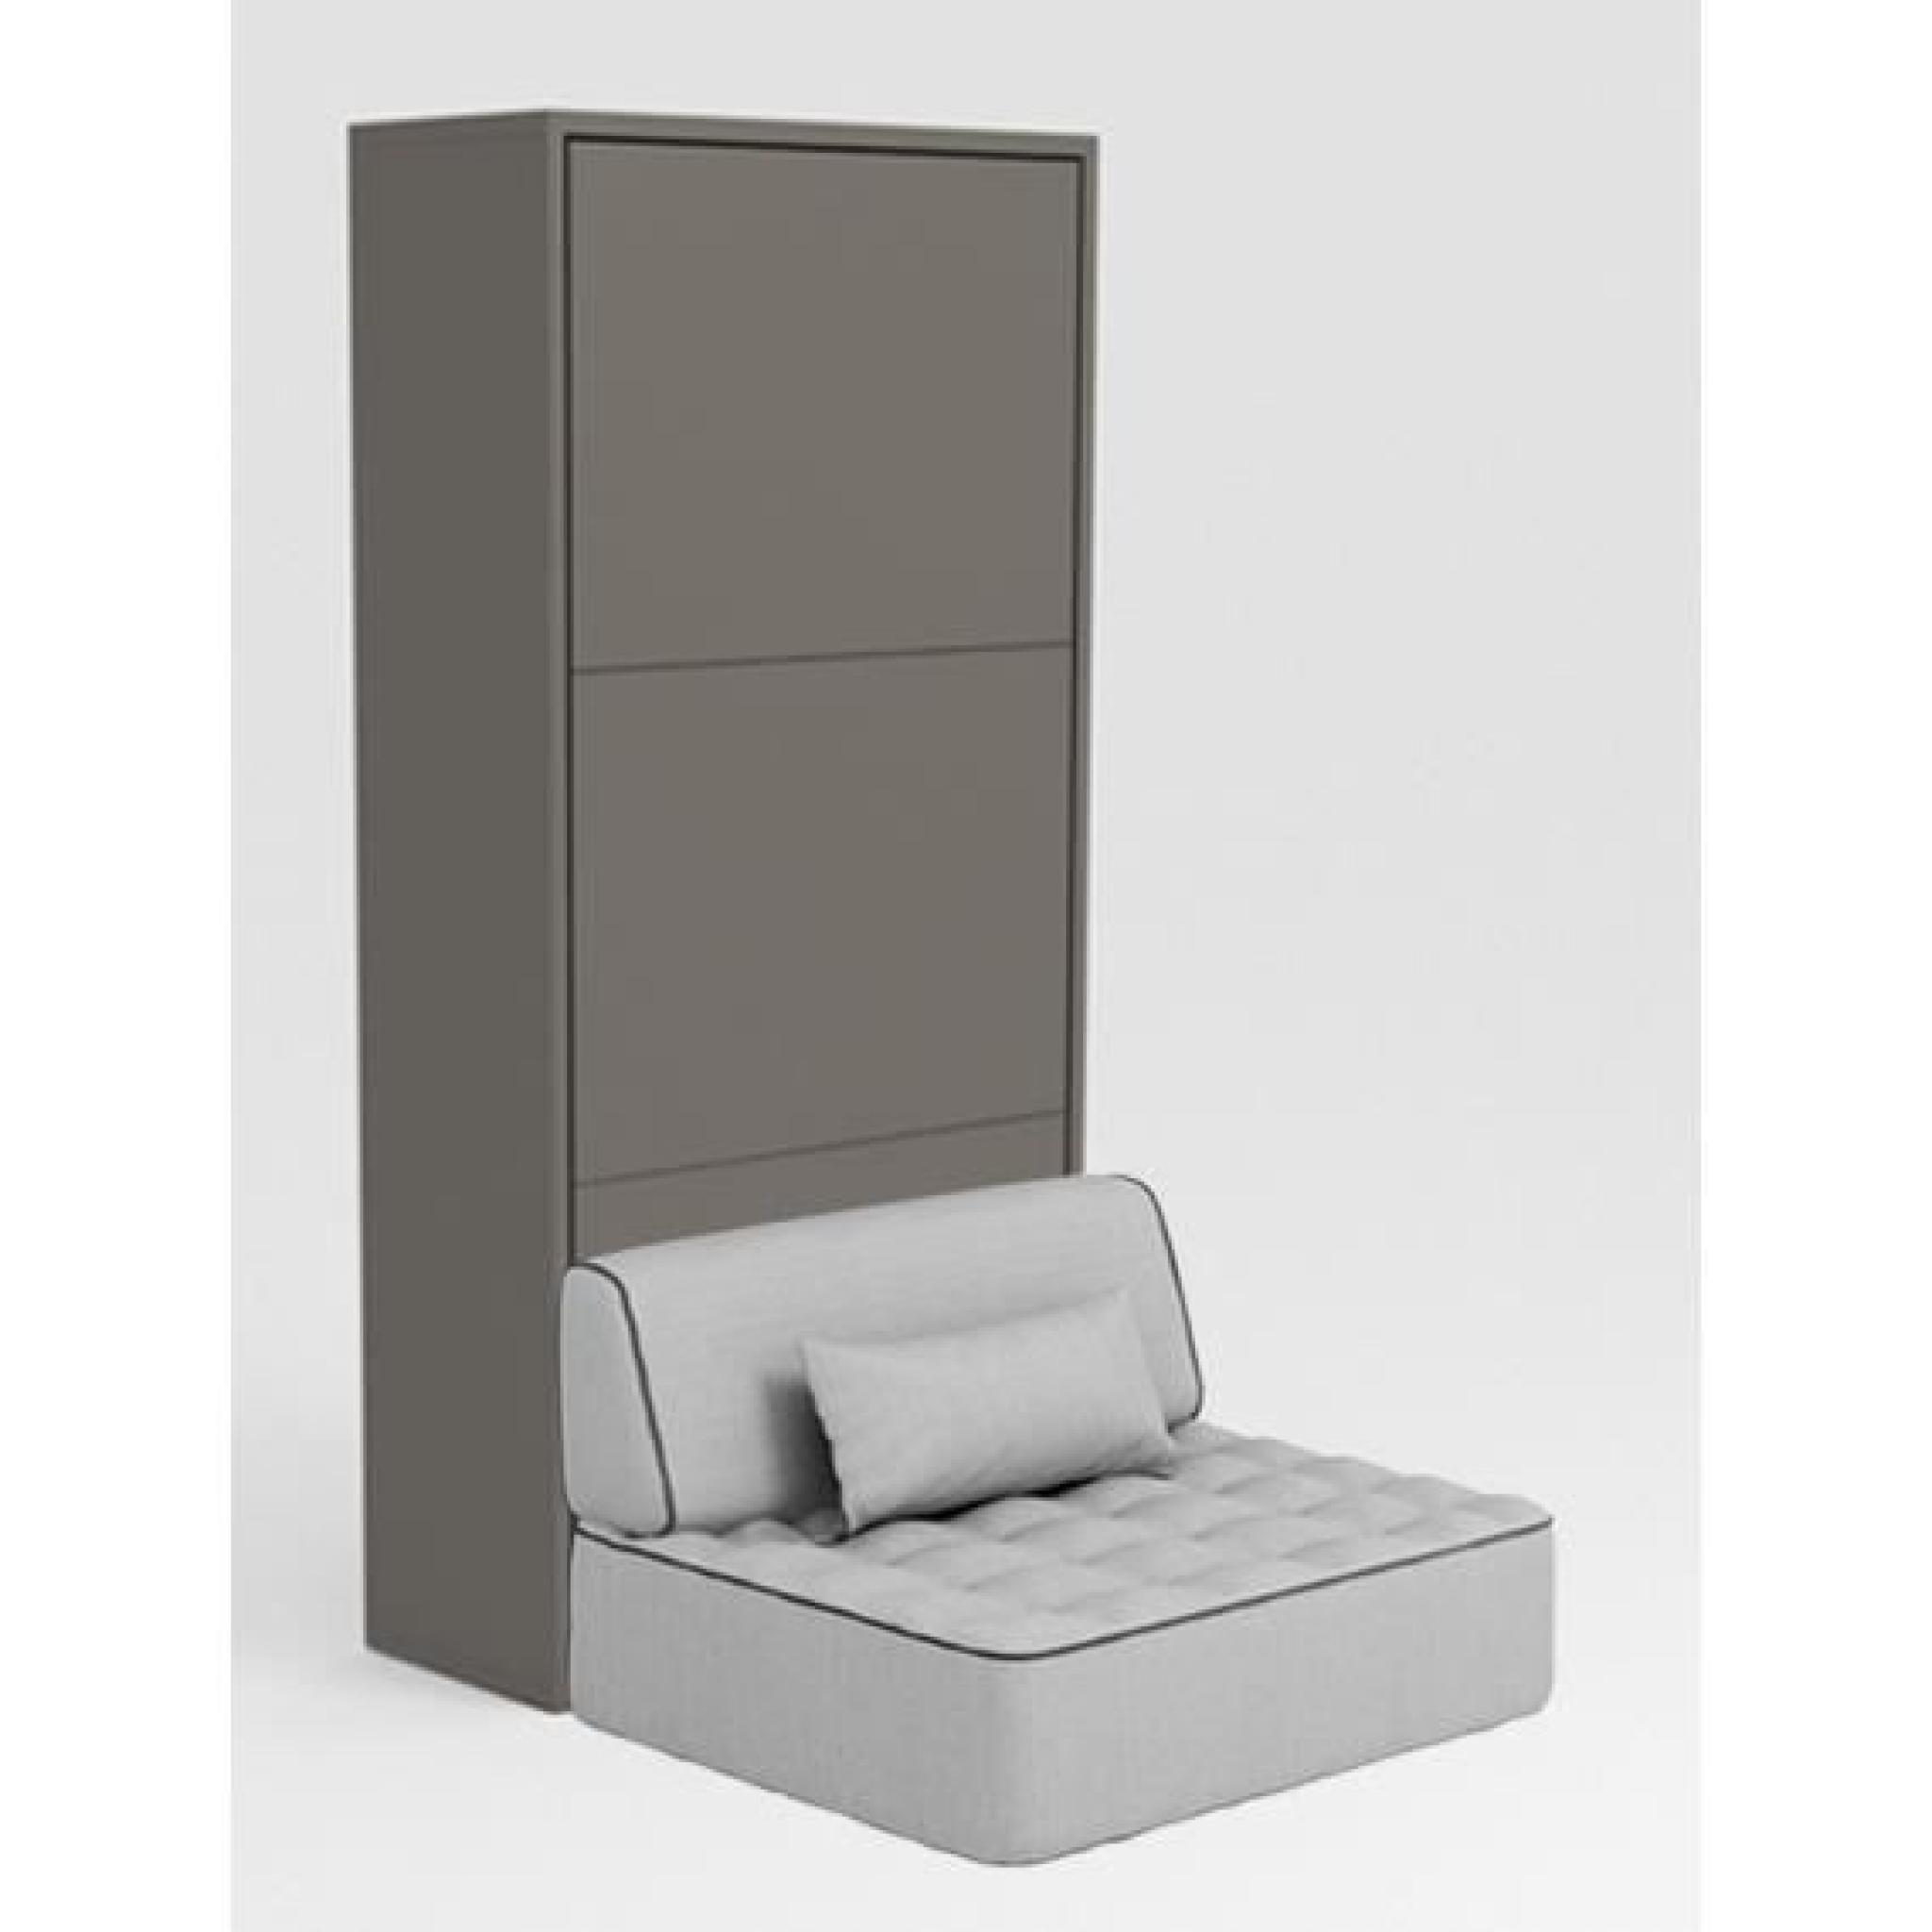 armoire lit escamotable stone 90x200 gris canap achat vente lit escamotable pas cher. Black Bedroom Furniture Sets. Home Design Ideas